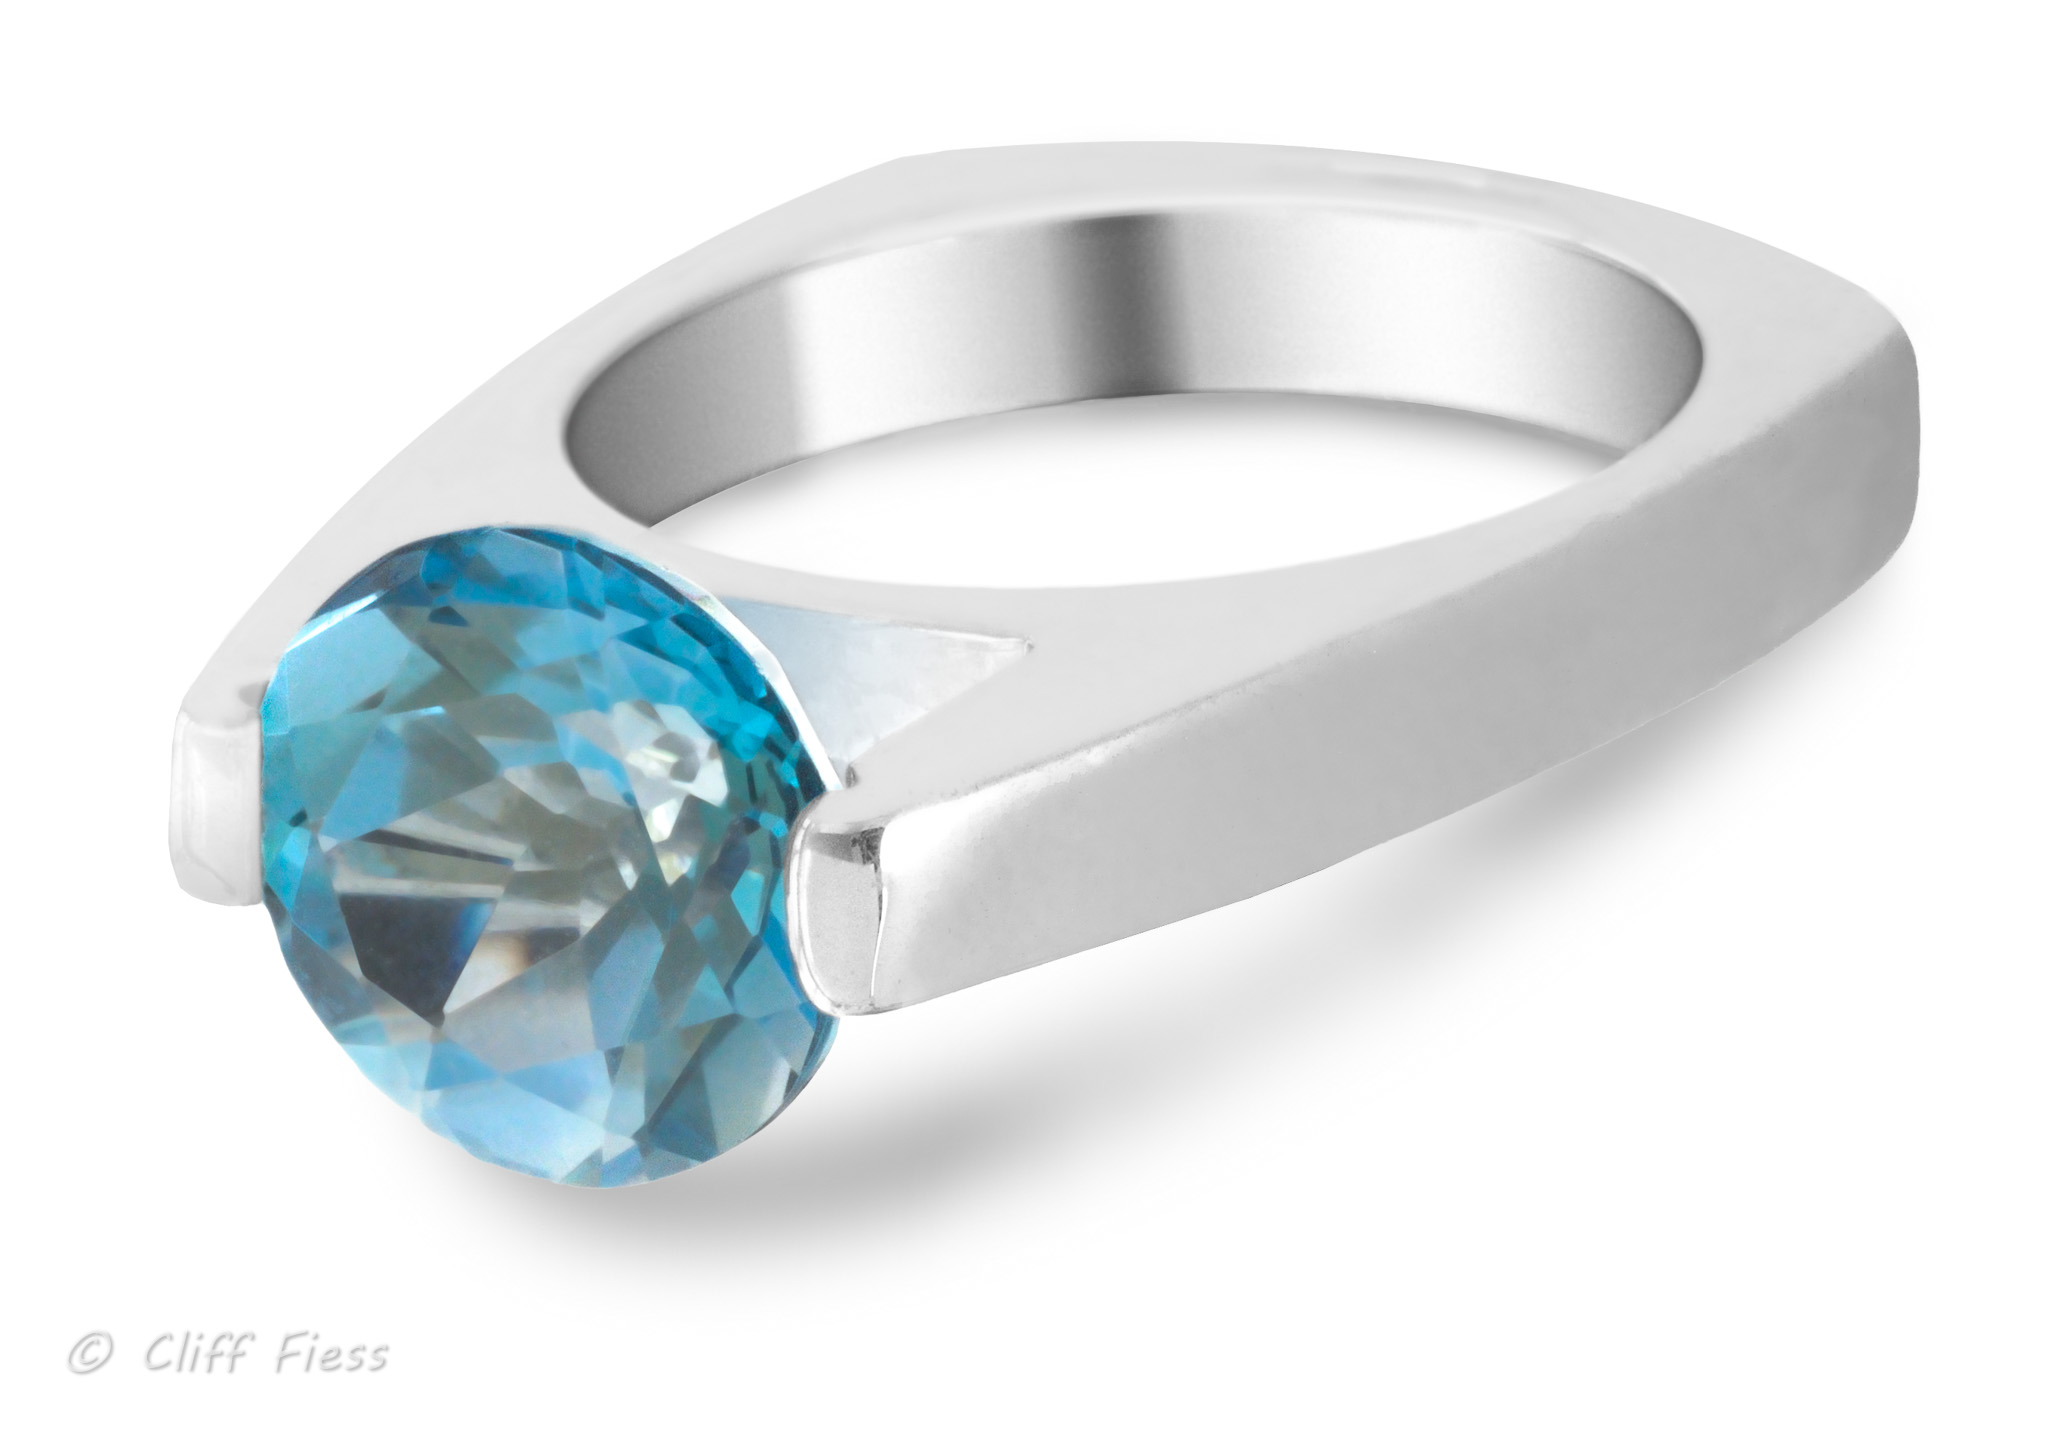 Sterling silver ring with a blue topaz gemstone